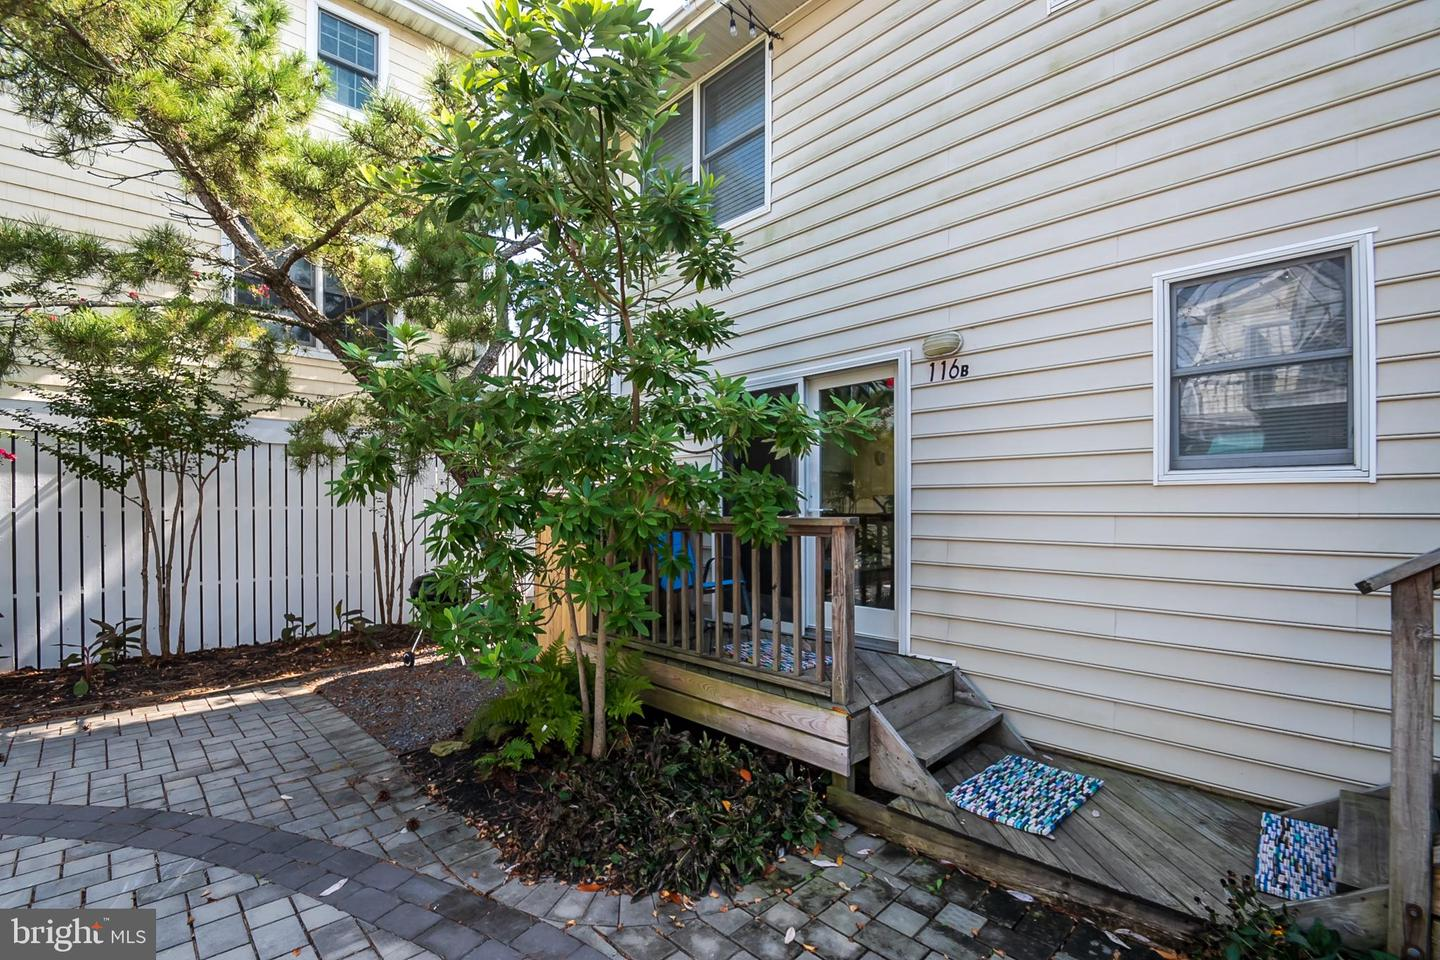 DESU161746-304145883971-2020-05-30-11-15-25 116 Hollywood St | Bethany Beach, DE Real Estate For Sale | MLS# Desu161746  - Ocean Atlantic